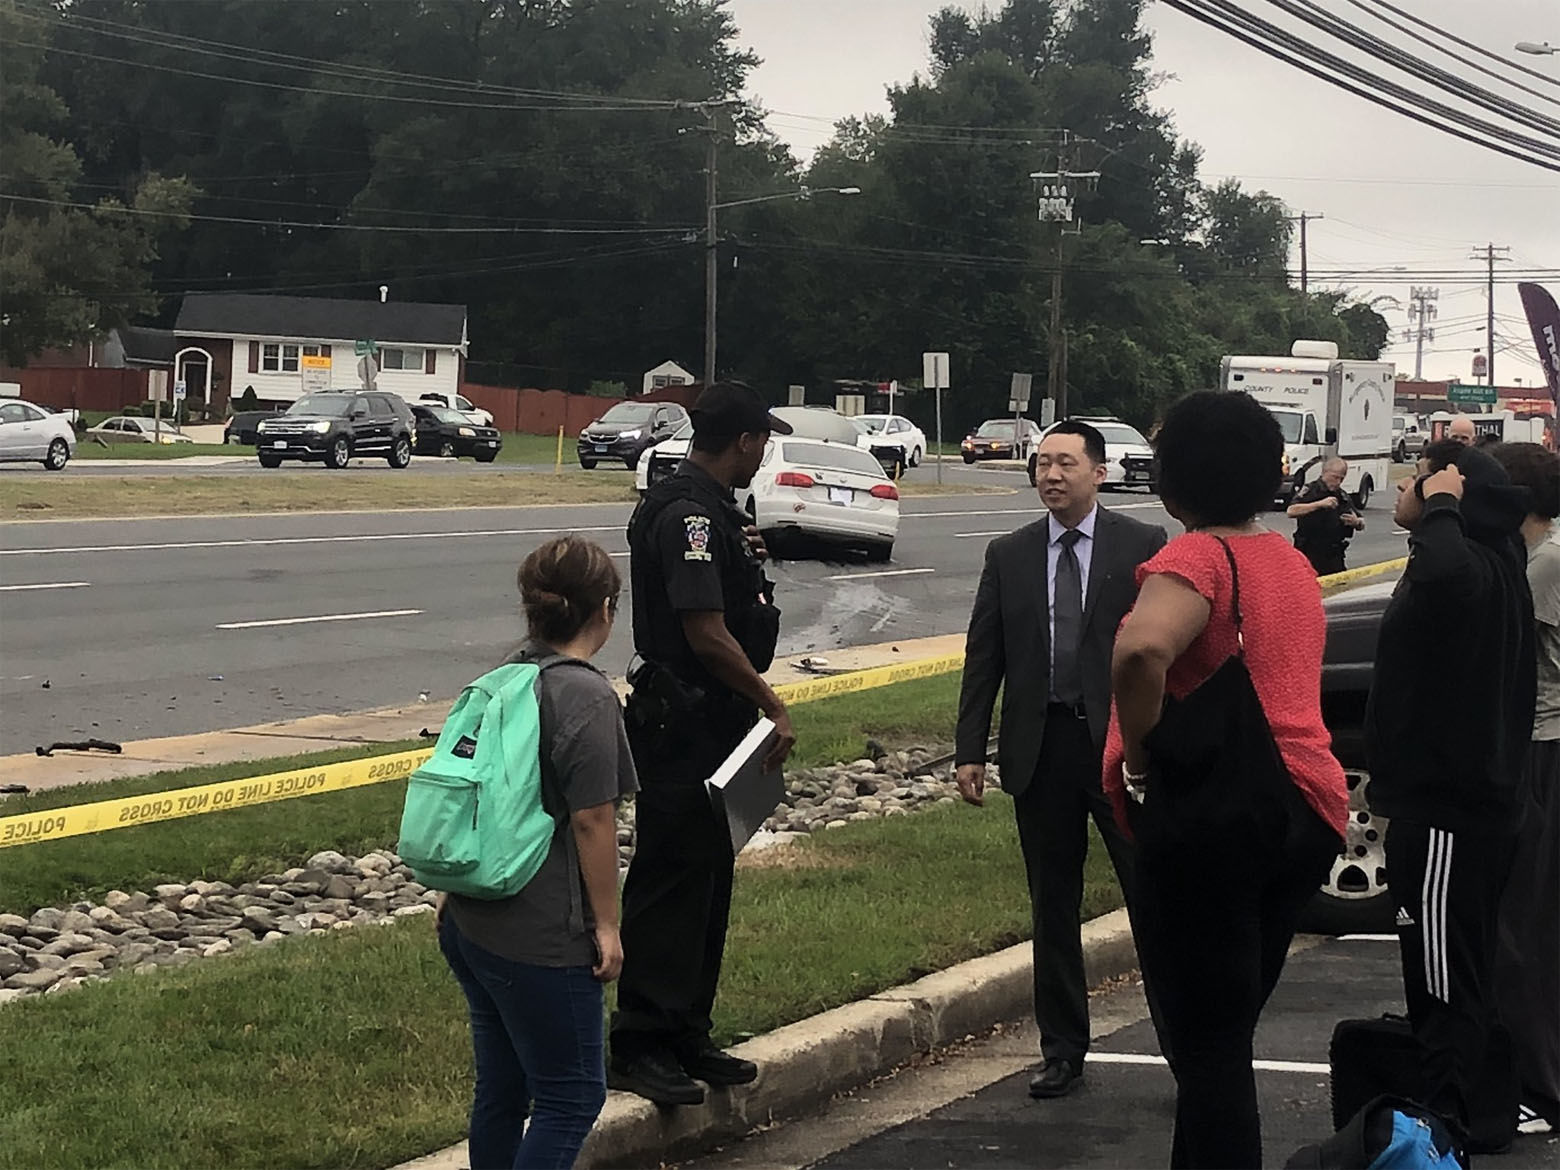 Four Kennedy High School students waiting for a school bus in Aspen Hill, Maryland, Tuesday morning were struck by a car that careened onto the sidewalk off Georgia Avenue. (WTOP/Melissa Howell)